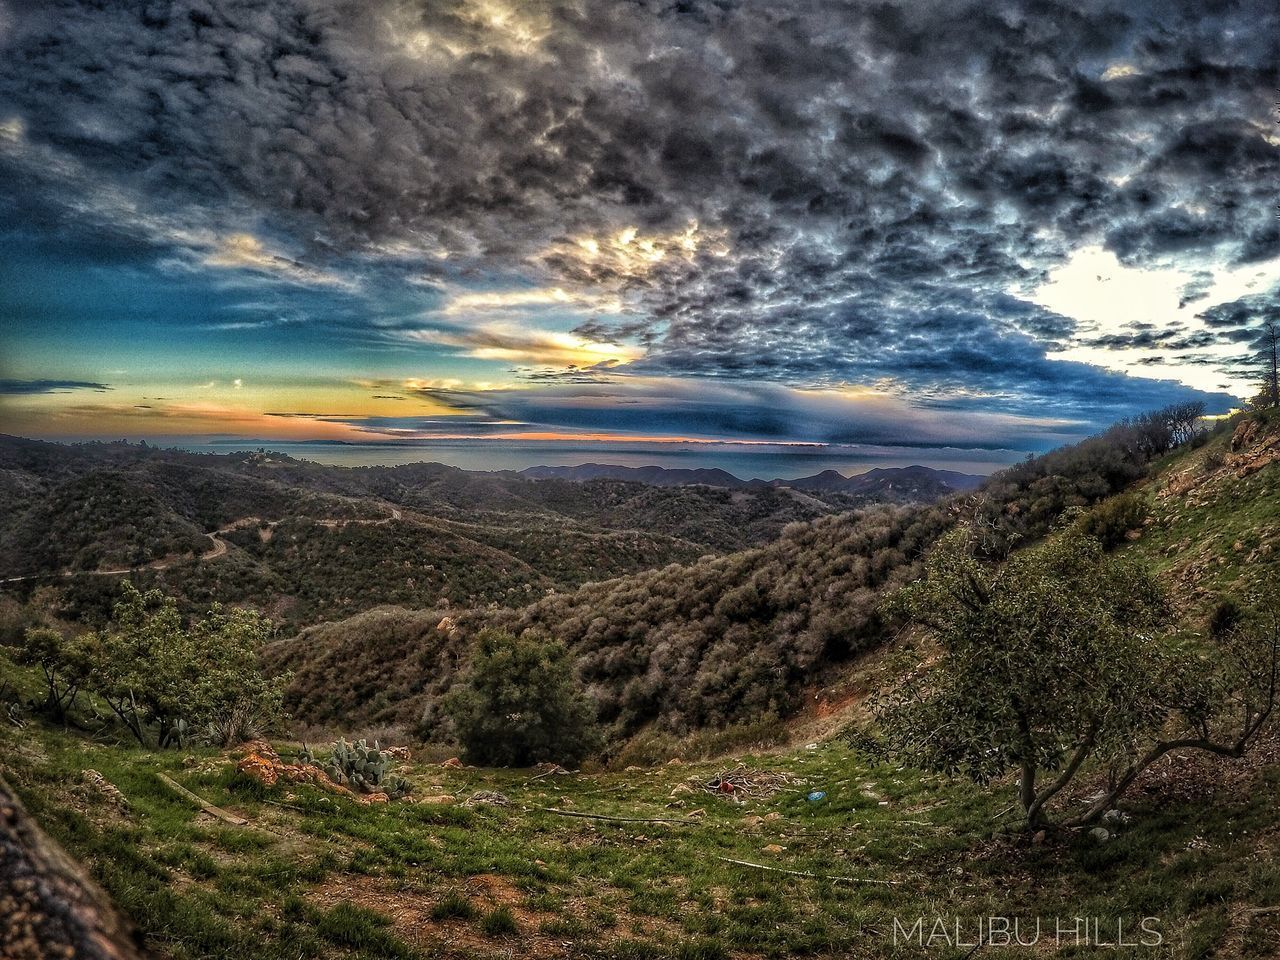 ||Malibu Hills|| Mountain Malibu Hills HDR Hdrsky Beauty In Nature Oceanview Tranquility Landscape Art Sky Malibu Coast Peace Life Inspire Hdr_gallery Hdr_Collection Hdr_pics Hdr_lovers Cloud - Sky Hdrphotography Gopro